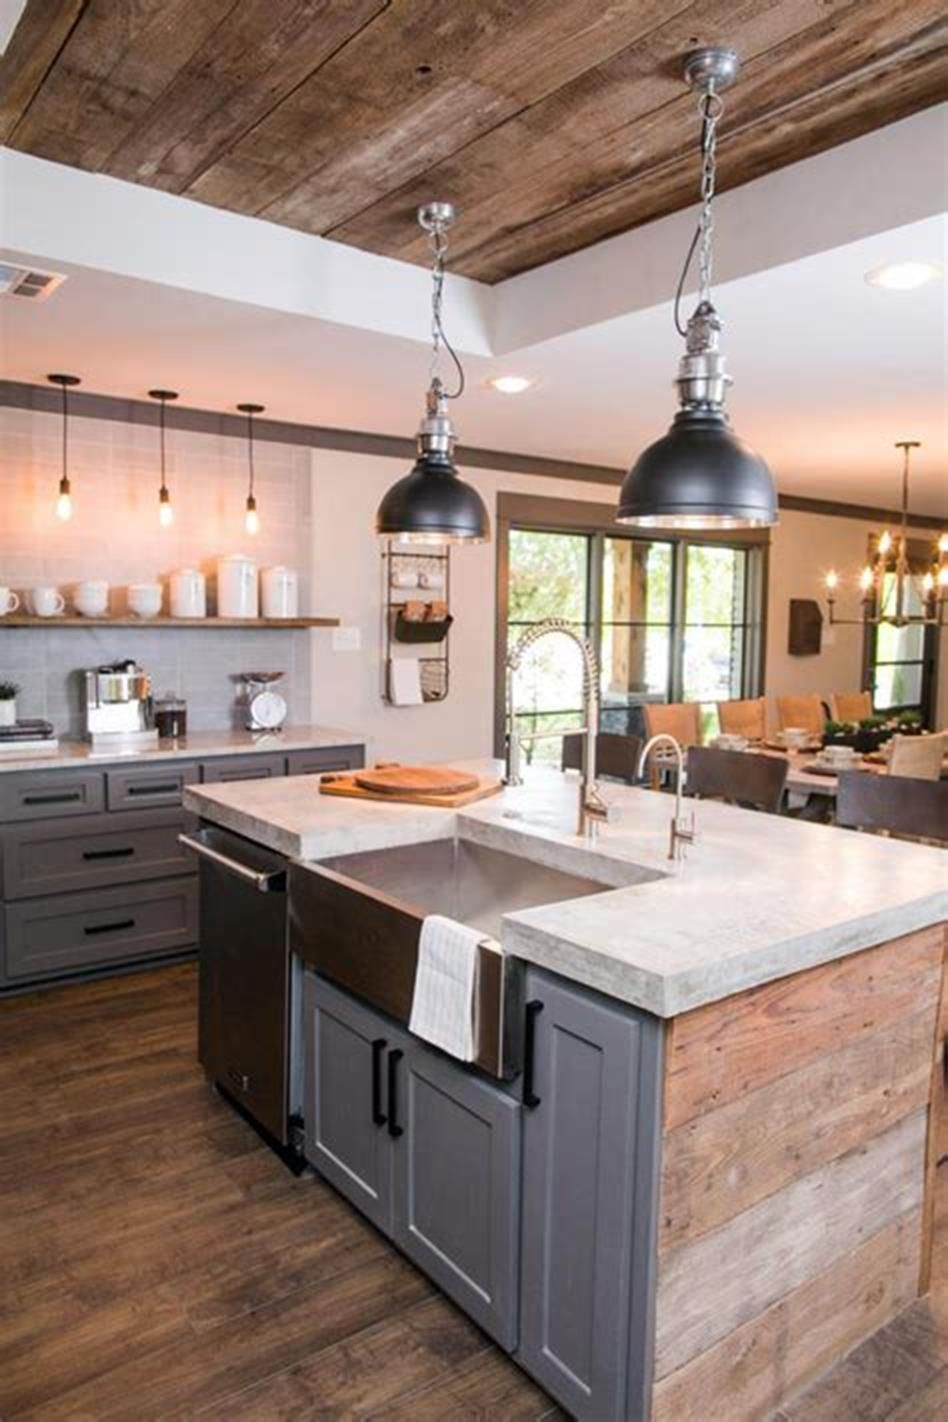 42 Most Popular Industrial Kitchen Design And Decor Ideas Decorecent Rustic Kitchen Design Industrial Kitchen Design Kitchen Island Design